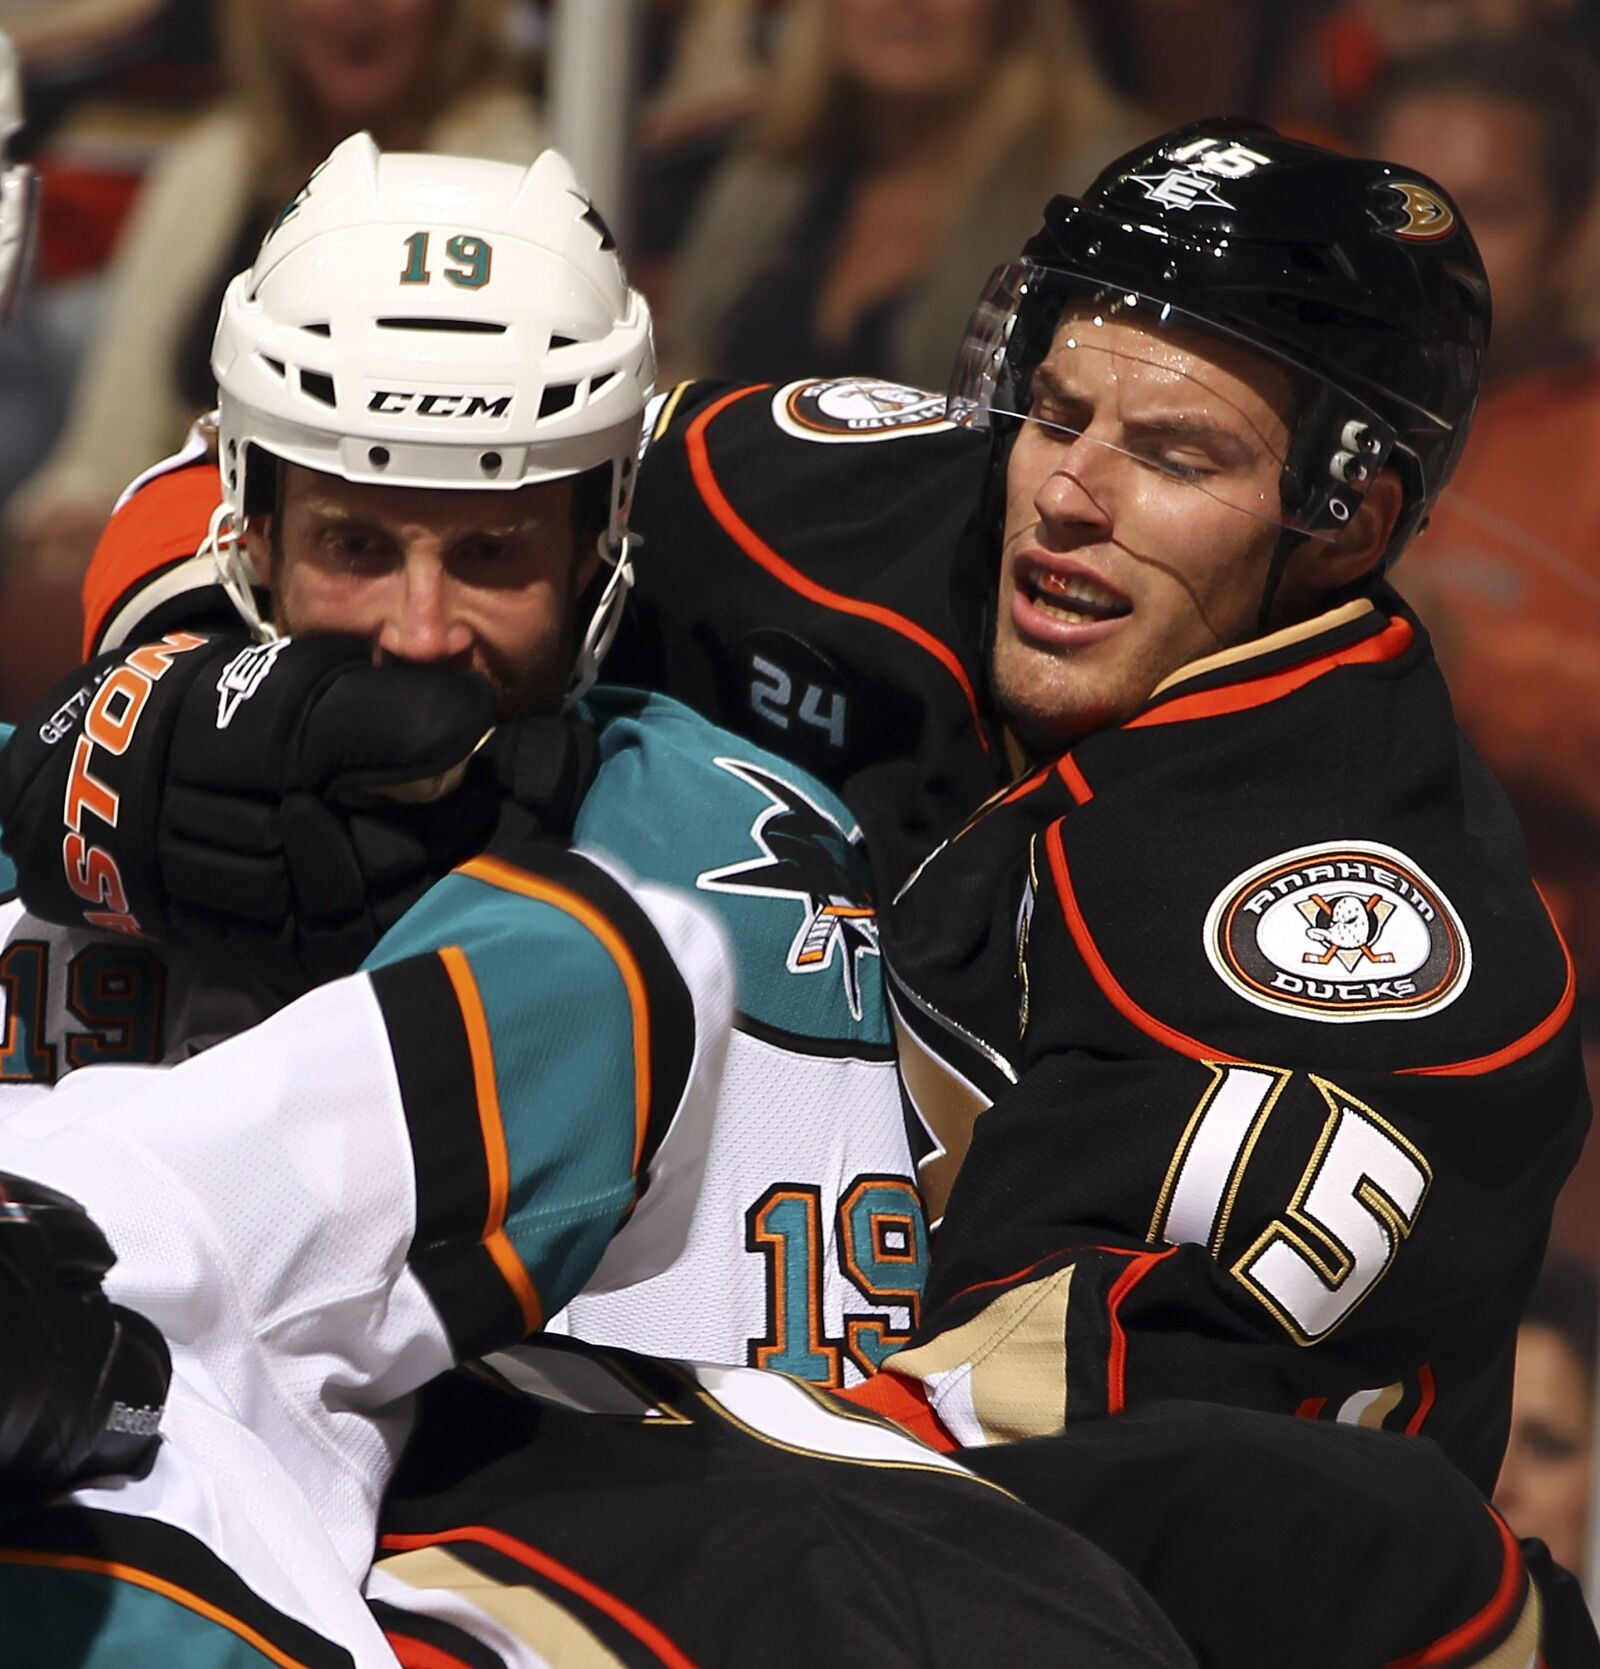 129239747-san-jose-sharks-v-anaheim-ducks.jpg